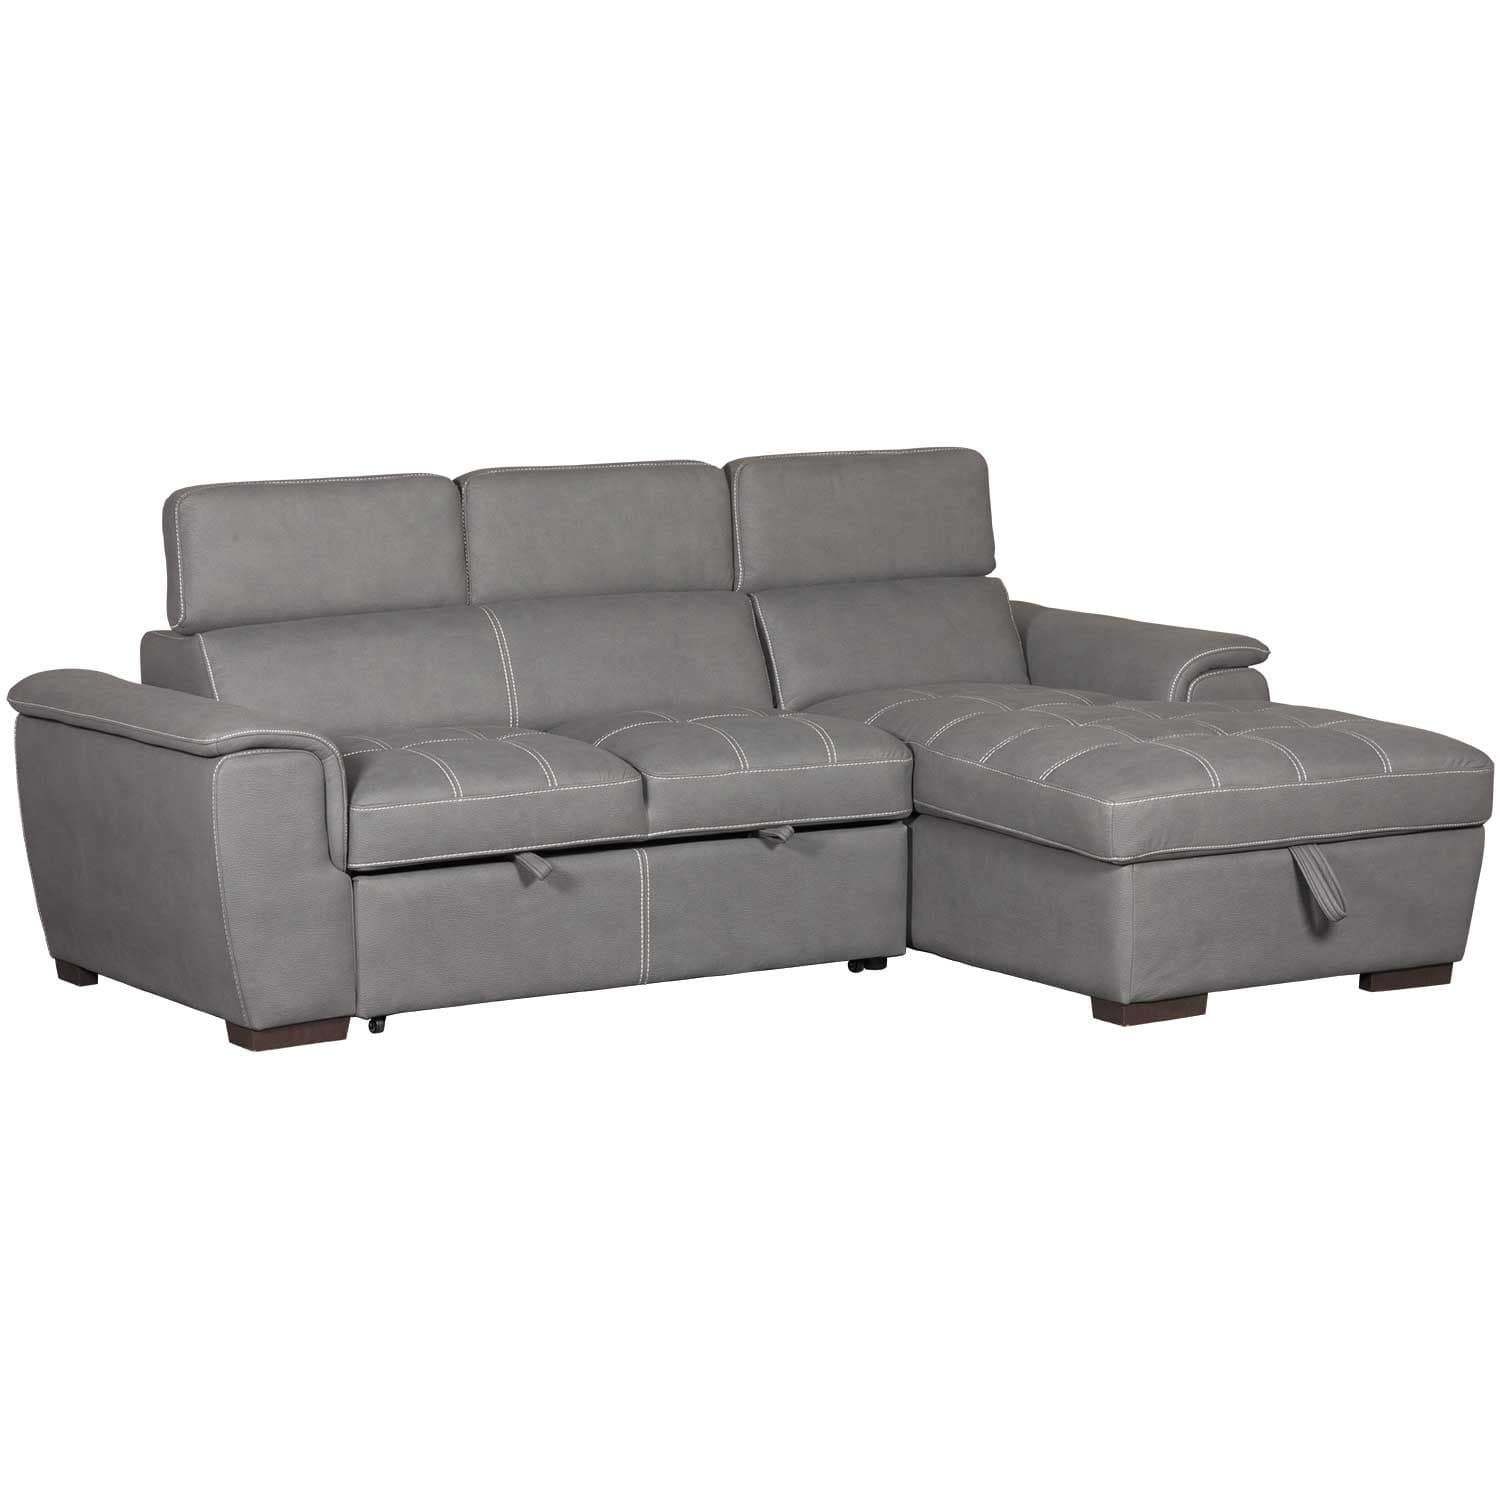 Levi 2 Piece Sectional with Pull Out Bed